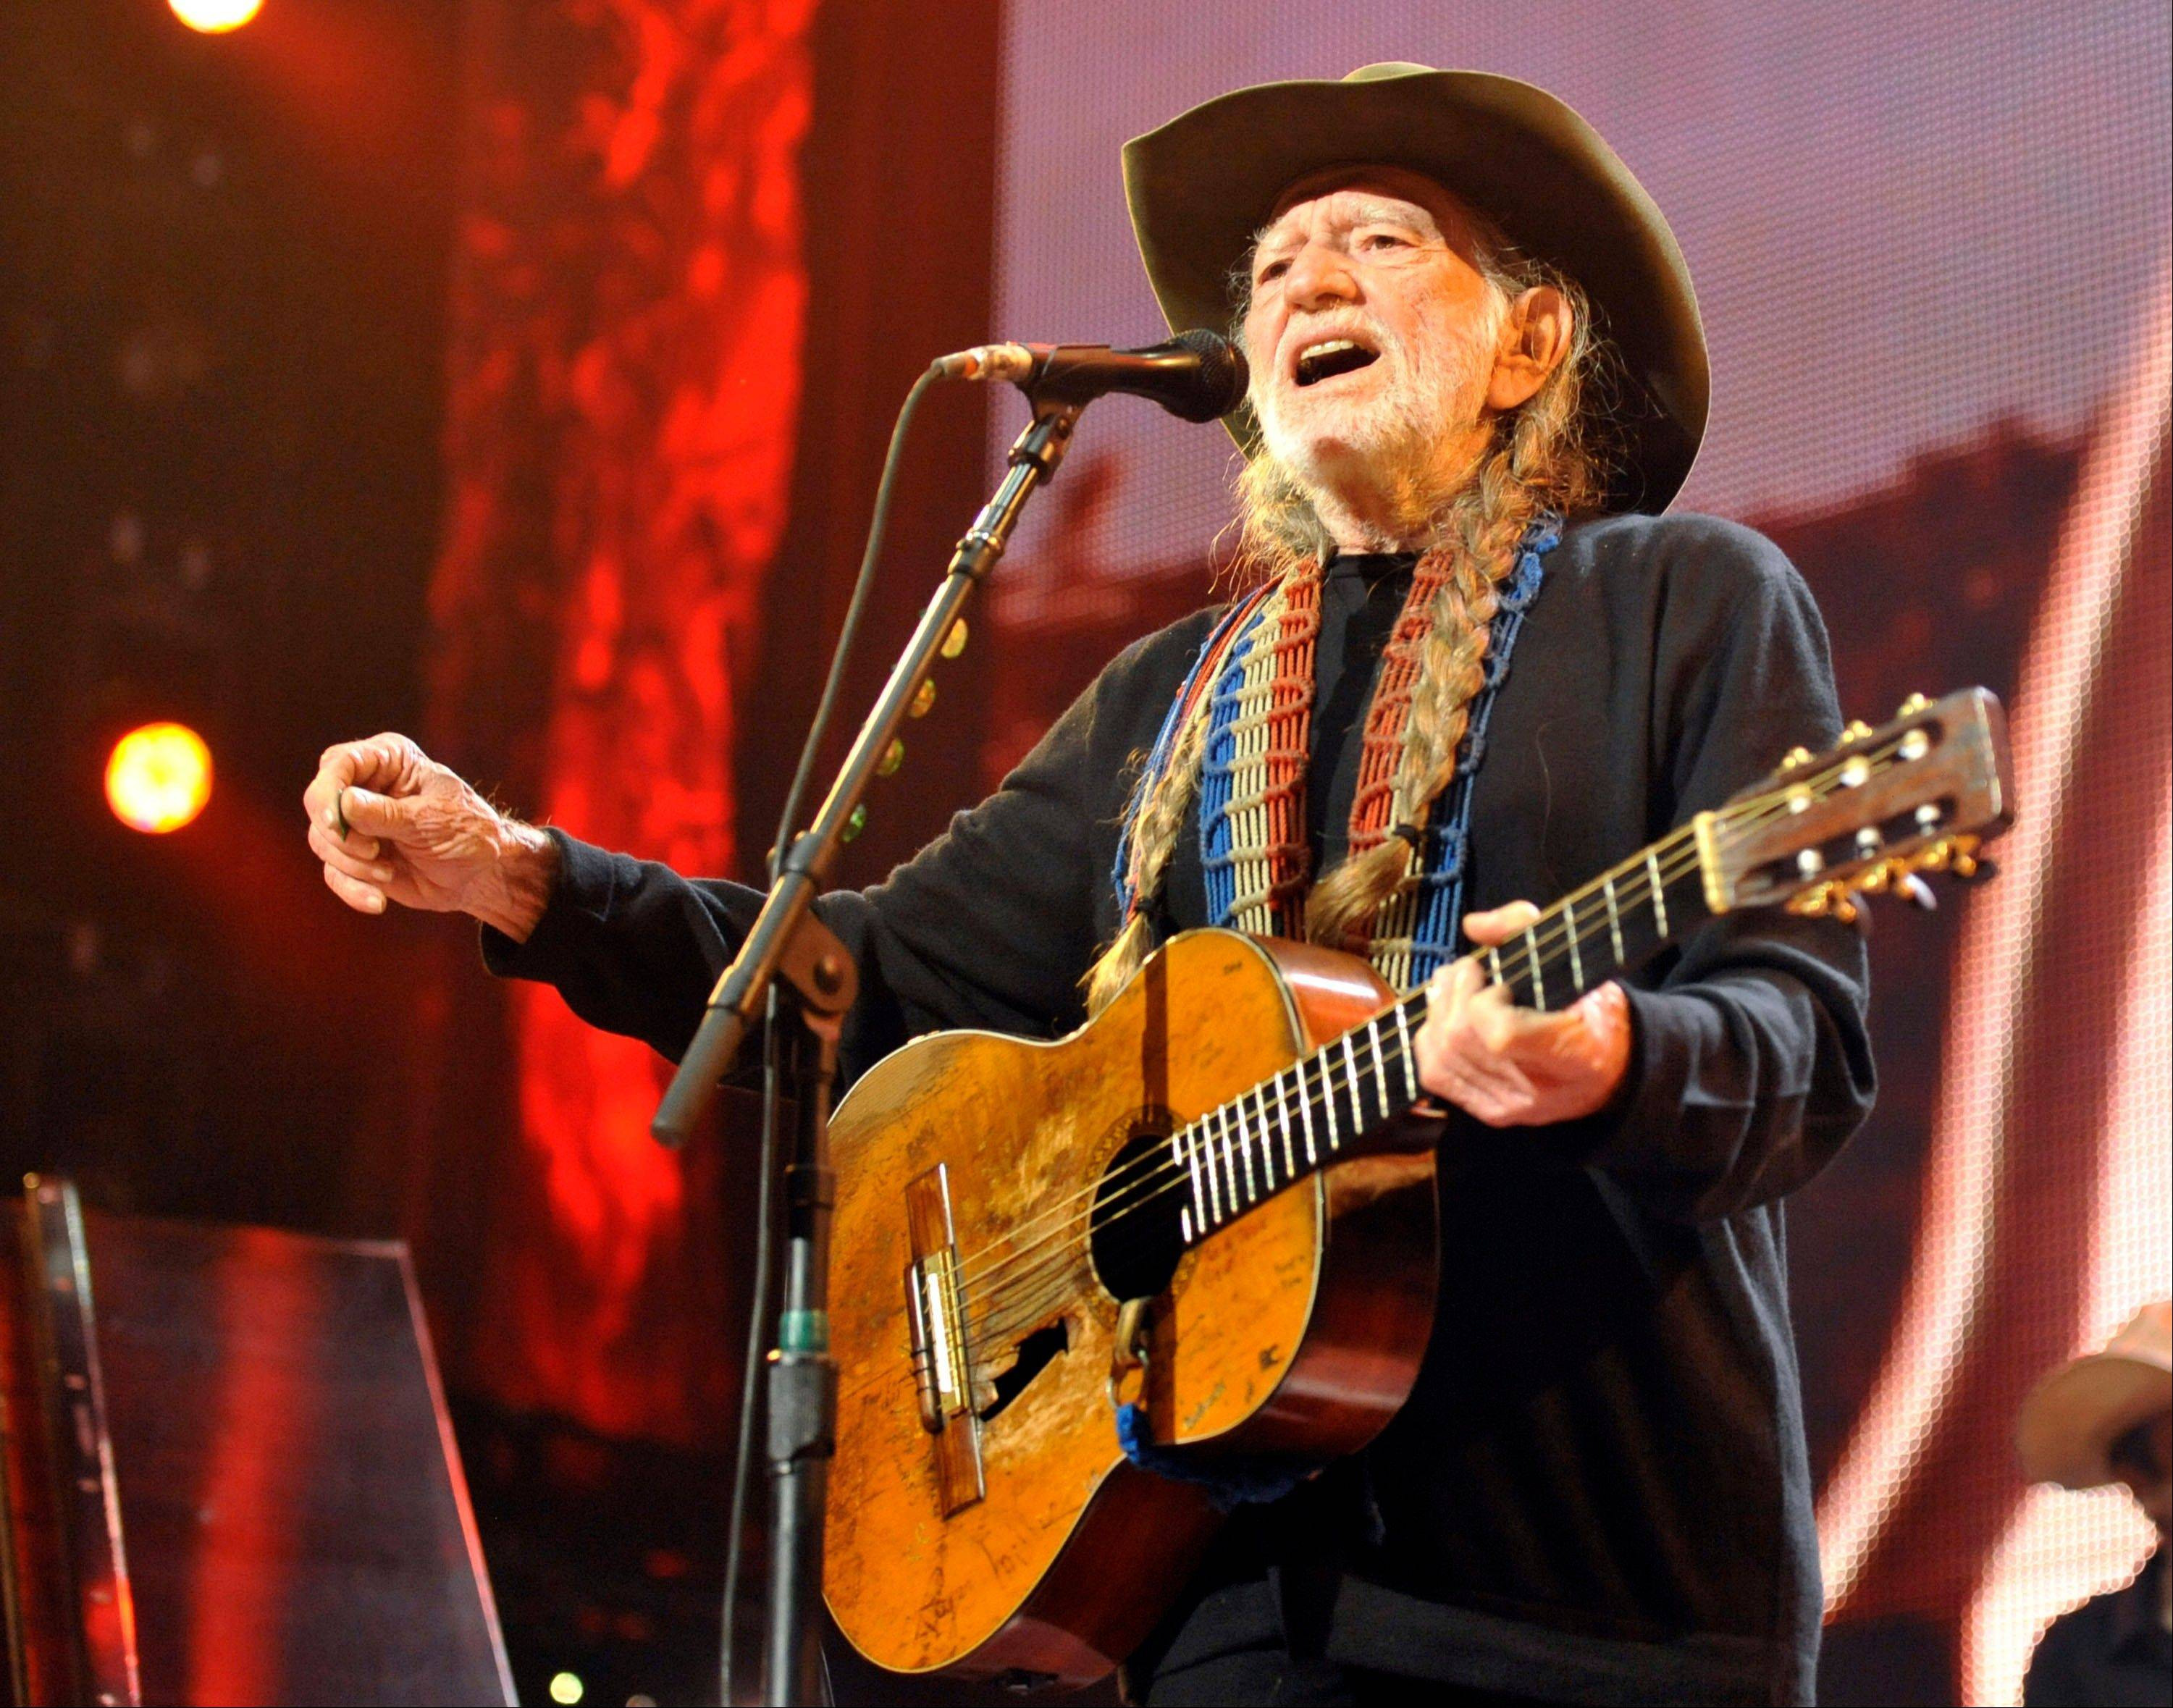 Willie Nelson has recuperated enough from a shoulder injury that he's able to keep his evening slot at the Zac Brown Band's Southern Ground Music & Food Festival on Saturday, Sept. 28, 2013, in Nashville, Tenn. Concerts in Michigan, Indiana and Illinois are being rescheduled.